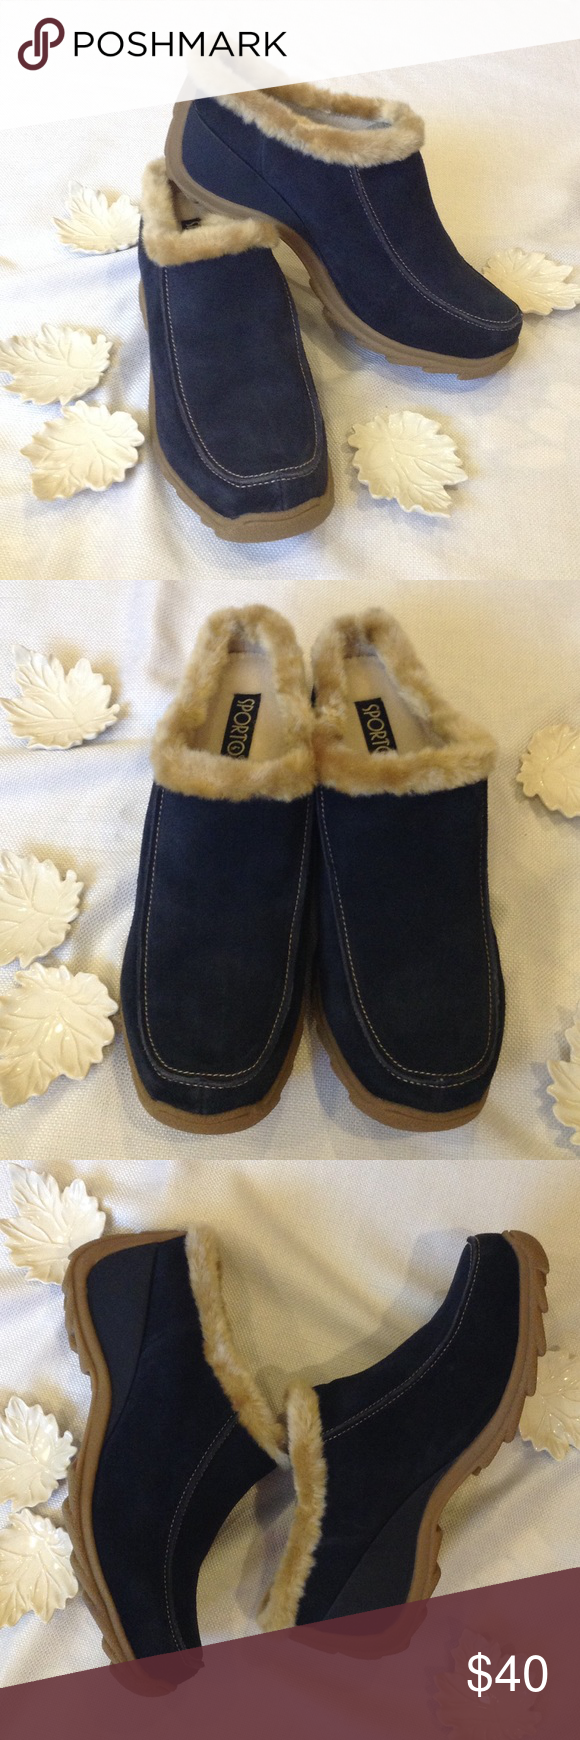 "Sporto Blue Suede Mules NWOB blue suede upper, faux fur collar, 2.25"" heel. Size is 11 W. Sporto Shoes Mules & Clogs"